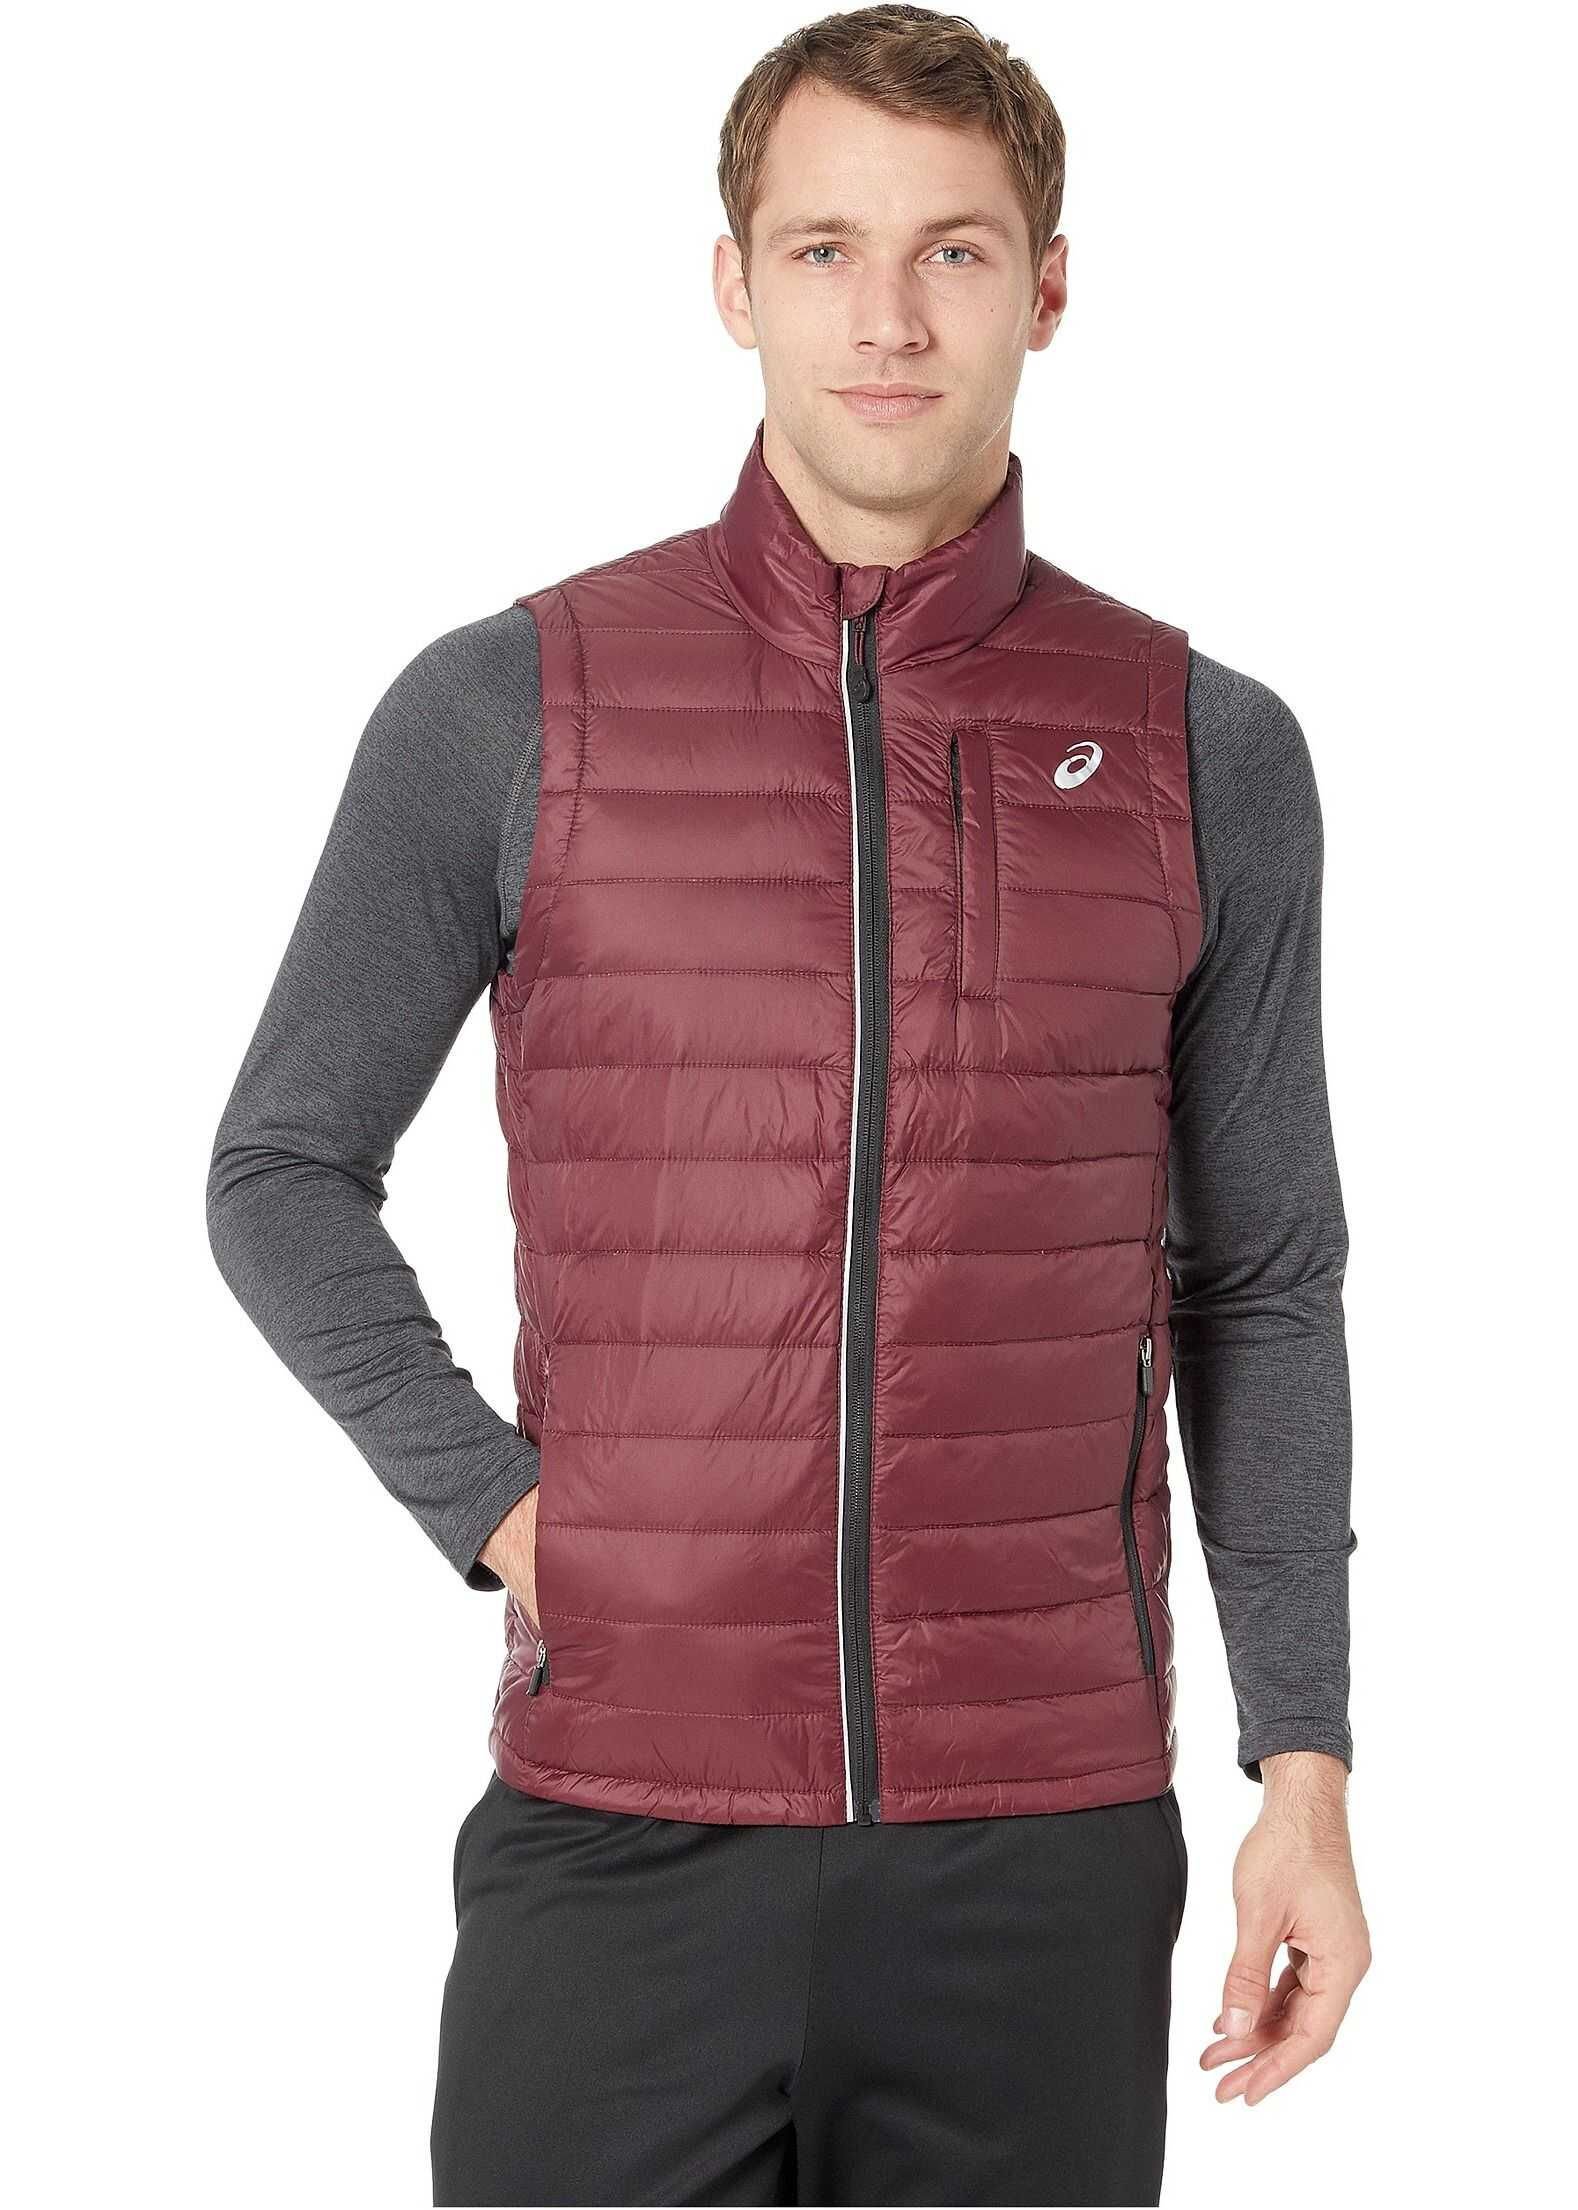 ASICS Power Puffer Vest Port Royal